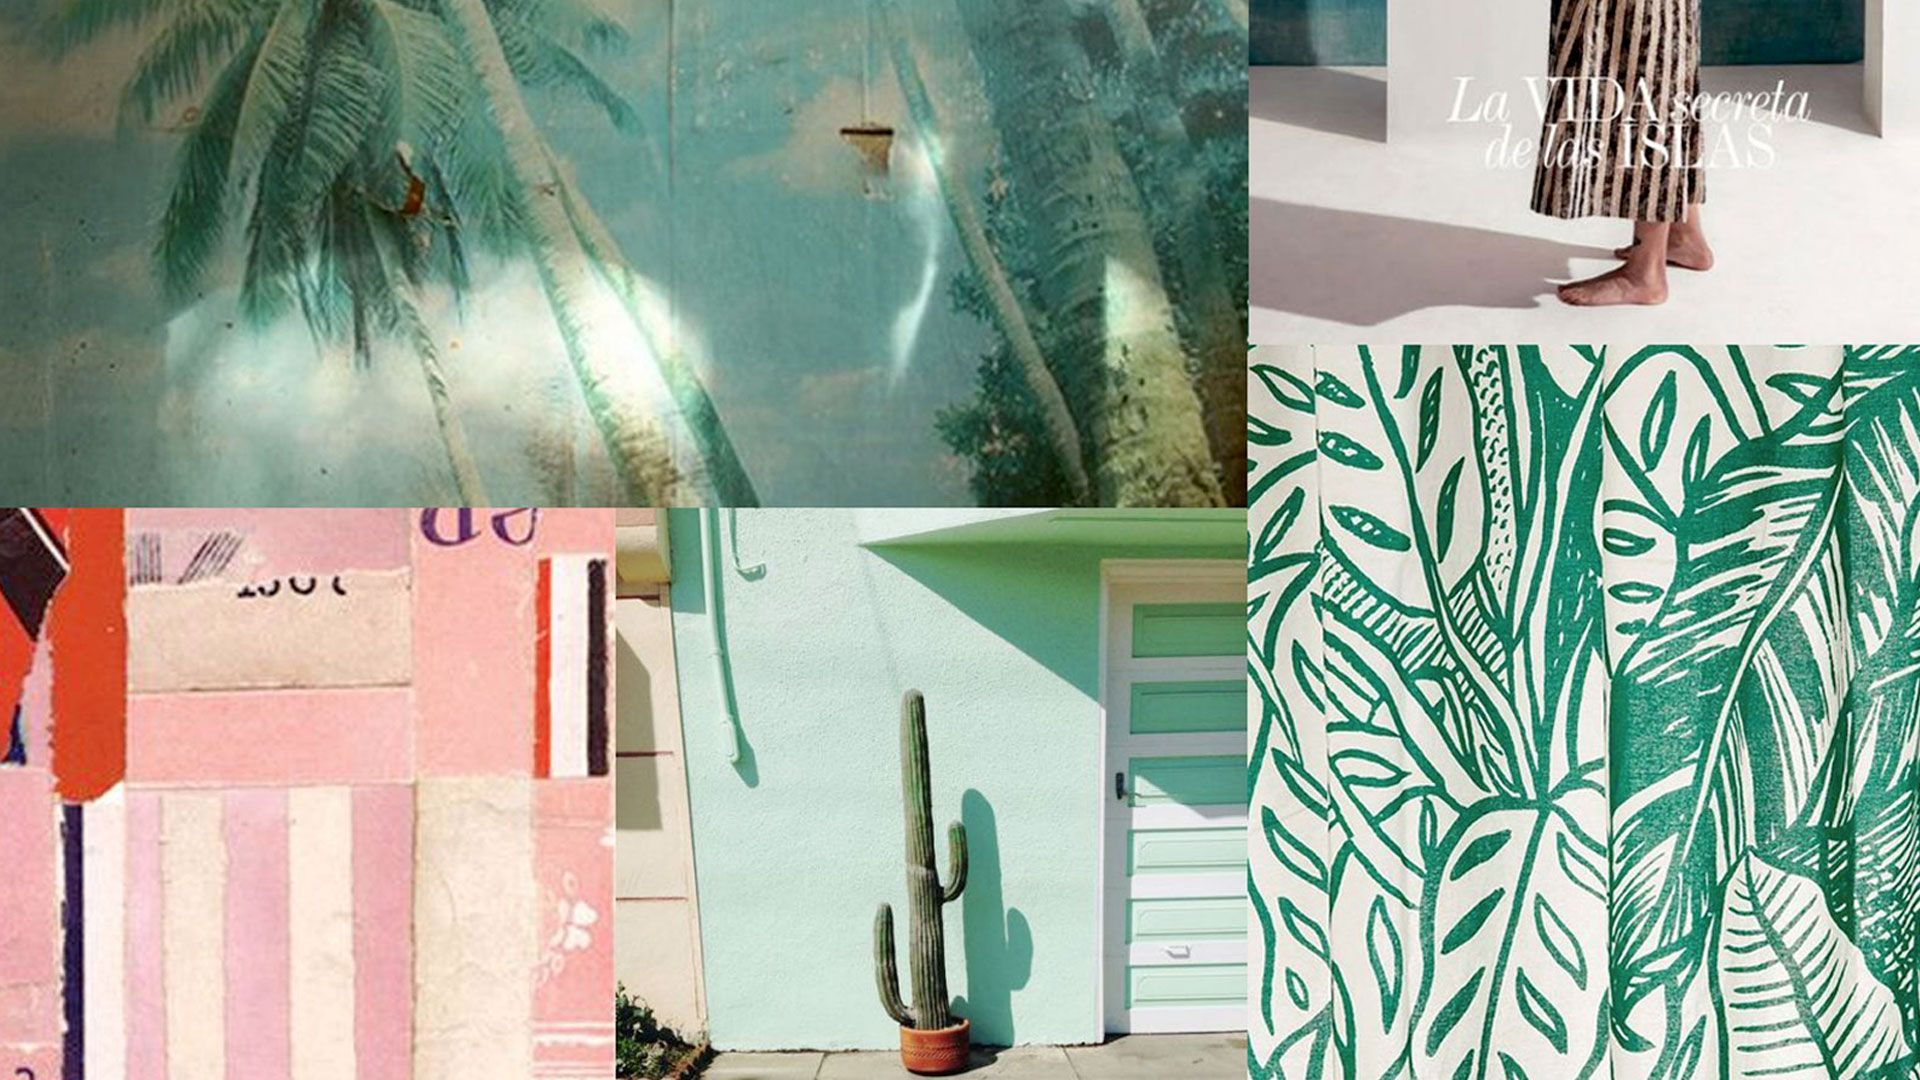 Maison Tinsels Journal : news & fashion tendances